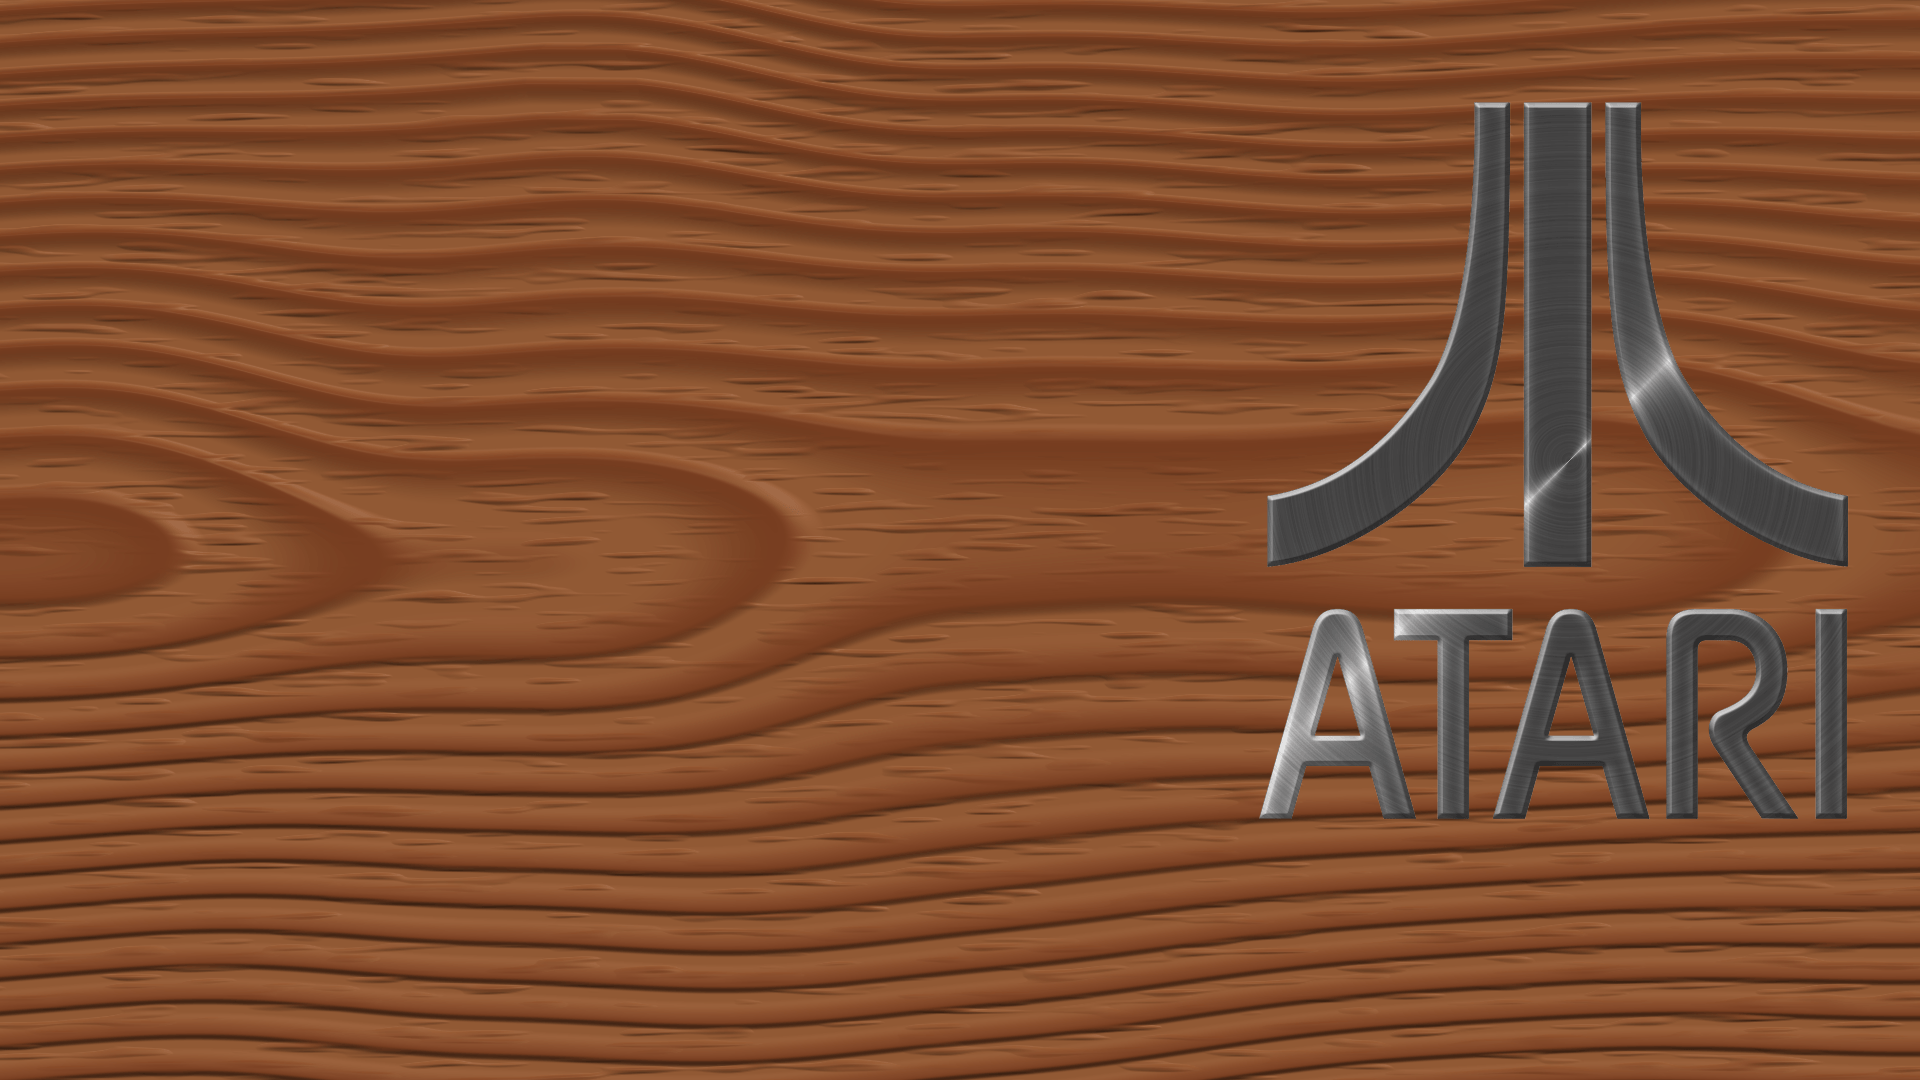 Atari Wallpaper by Jackydile on DeviantArt